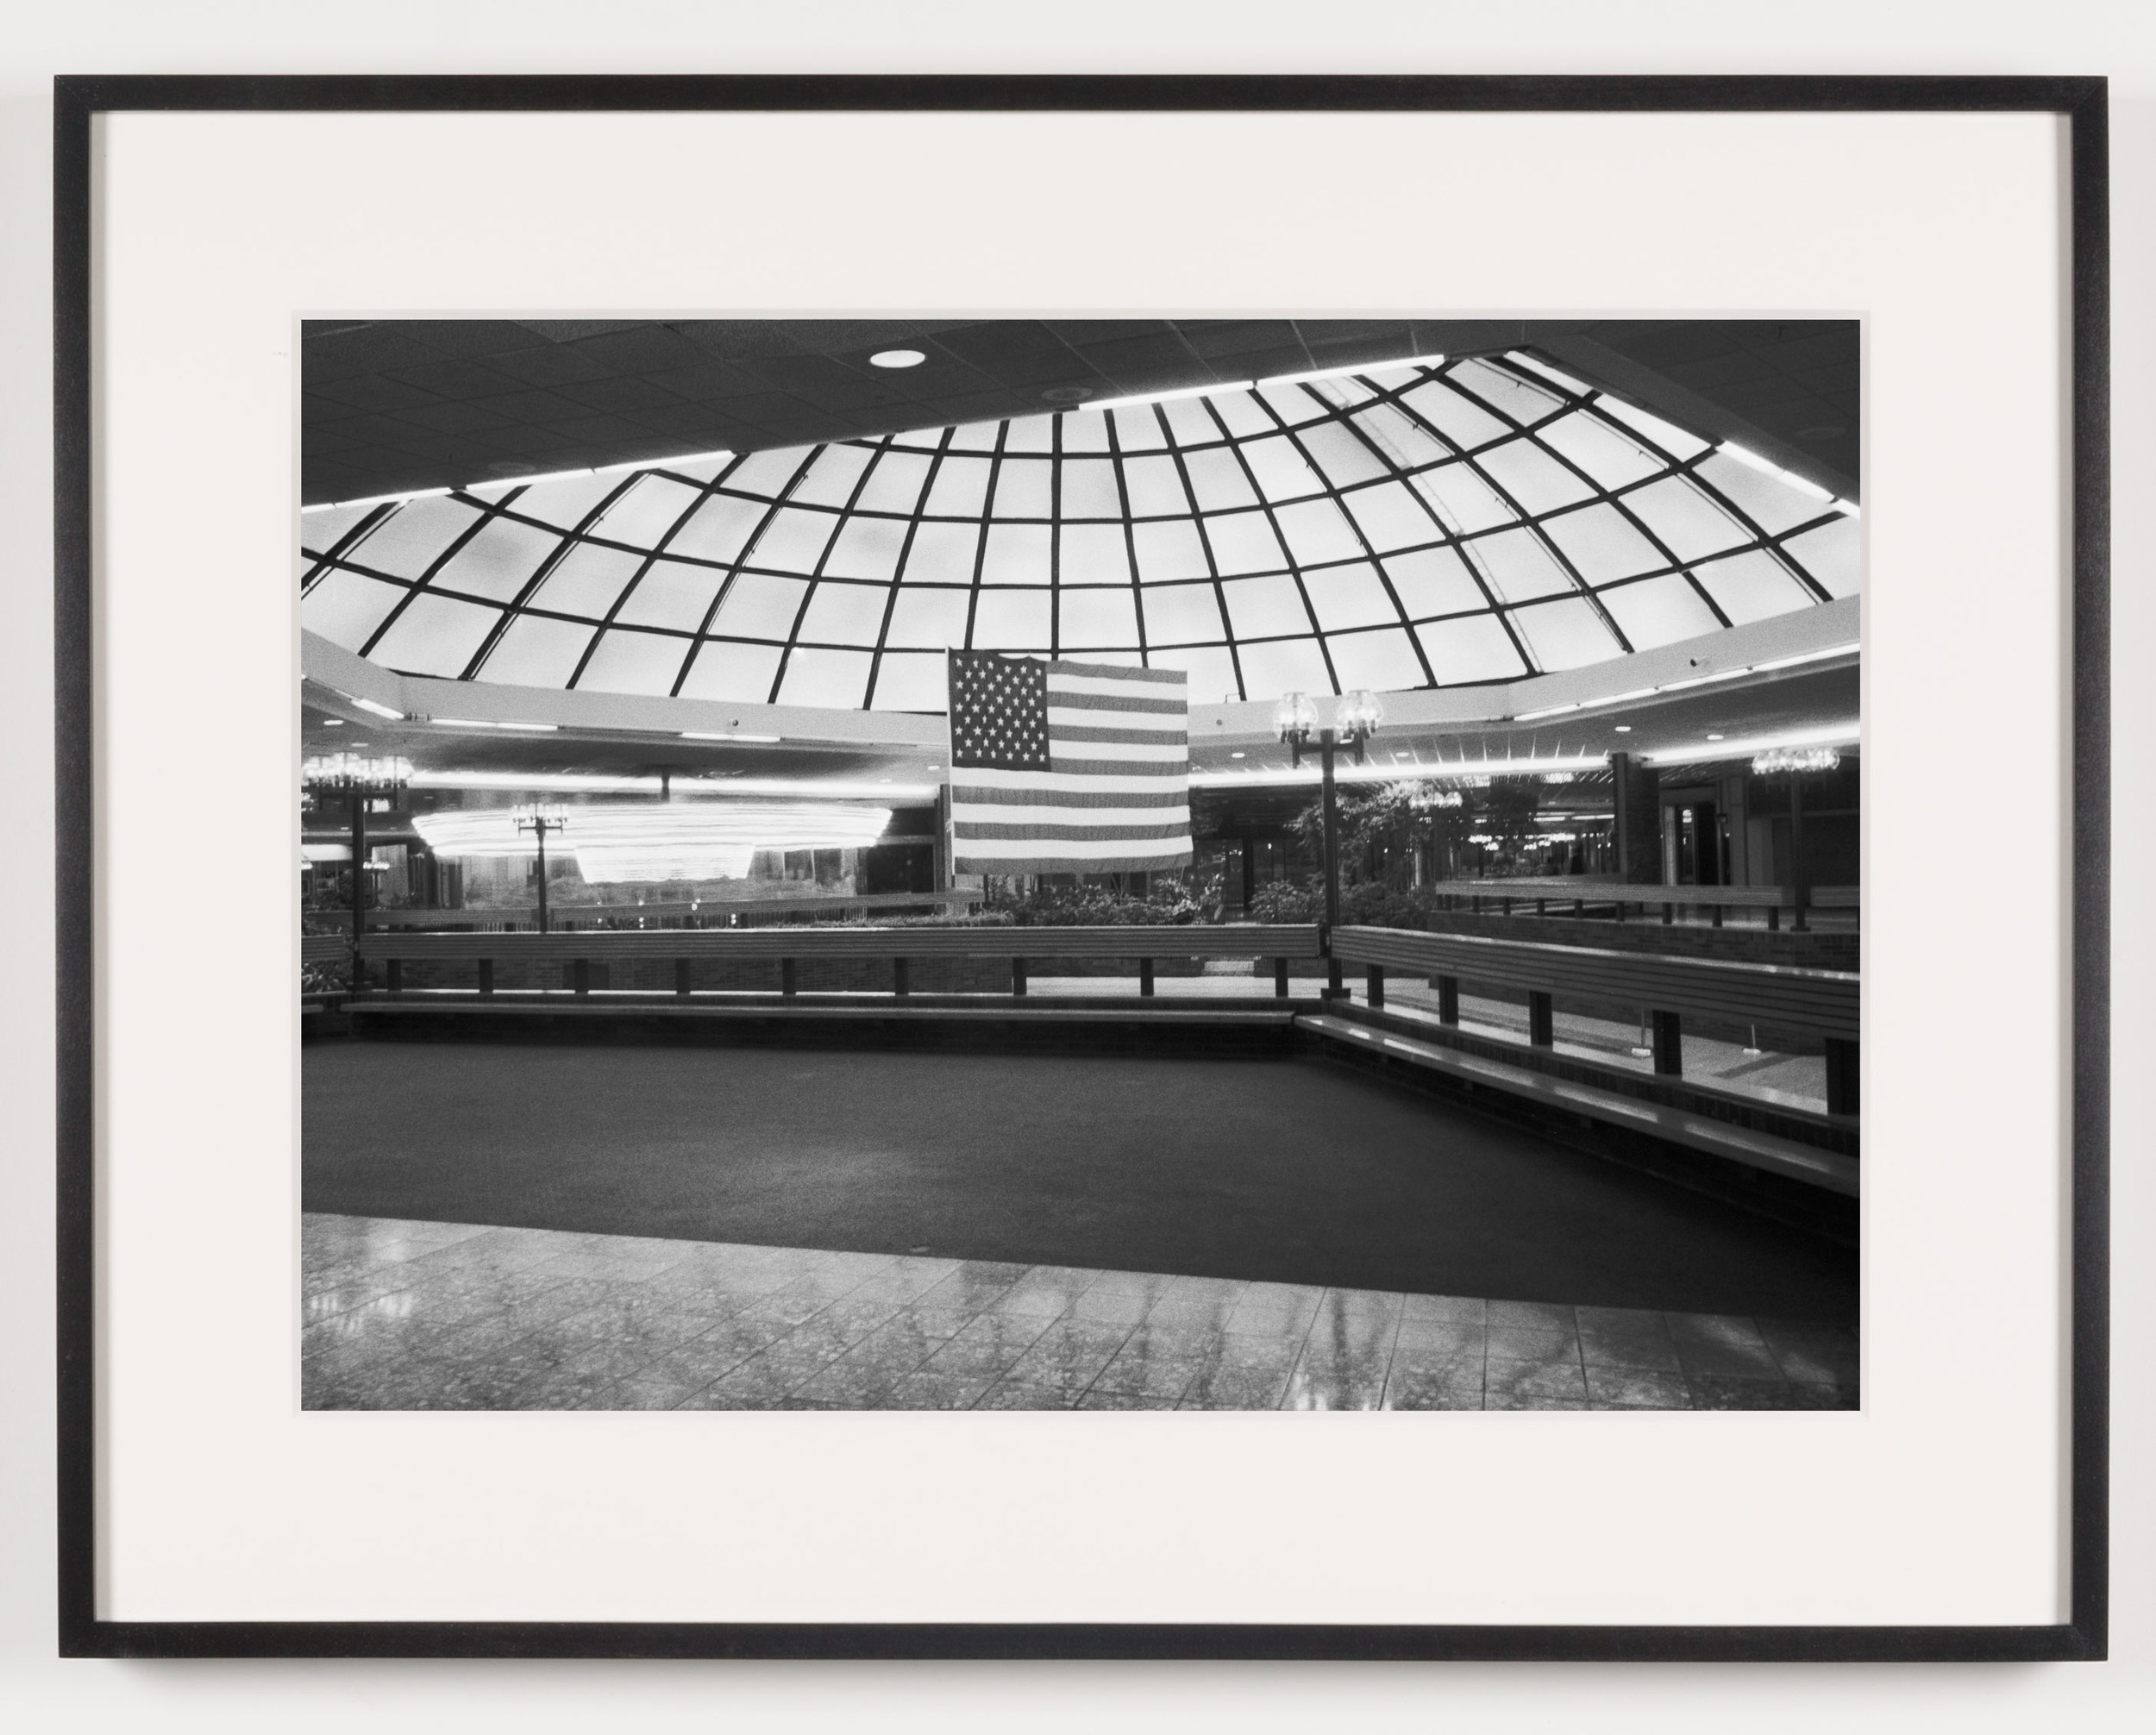 Southwyck Mall (View of Fountain), Toledo, OH, Est. 1972, Demo. 2009    2011   Epson Ultrachrome K3 archival ink jet print on Hahnemühle Photo Rag paper  21 5/8 x 28 1/8 inches   A Diagram of Forces, 2011